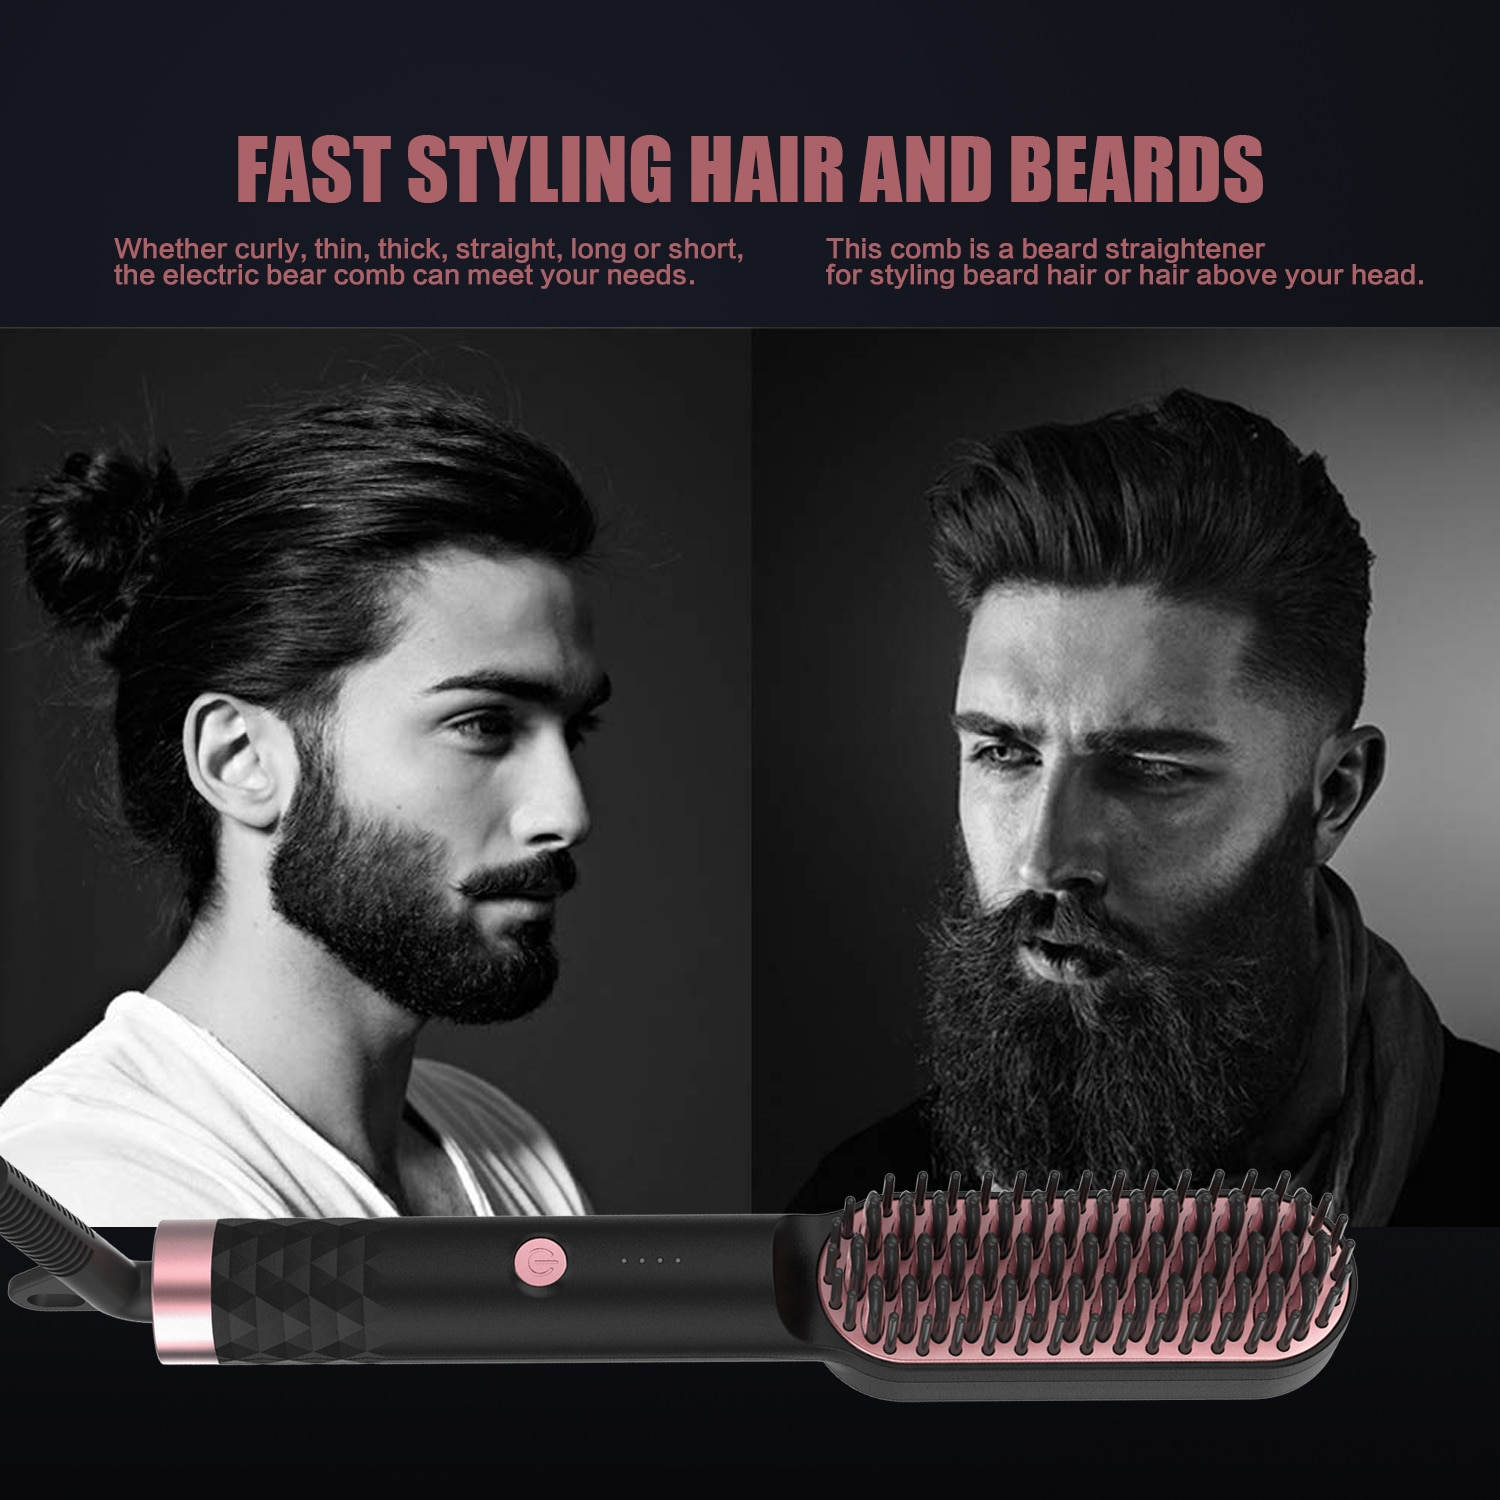 PTC Heating Hair Straightener Brush Comb Personal Care Smooth Men's Styling Shape Anti Static Fluffy Straight Beard Comb